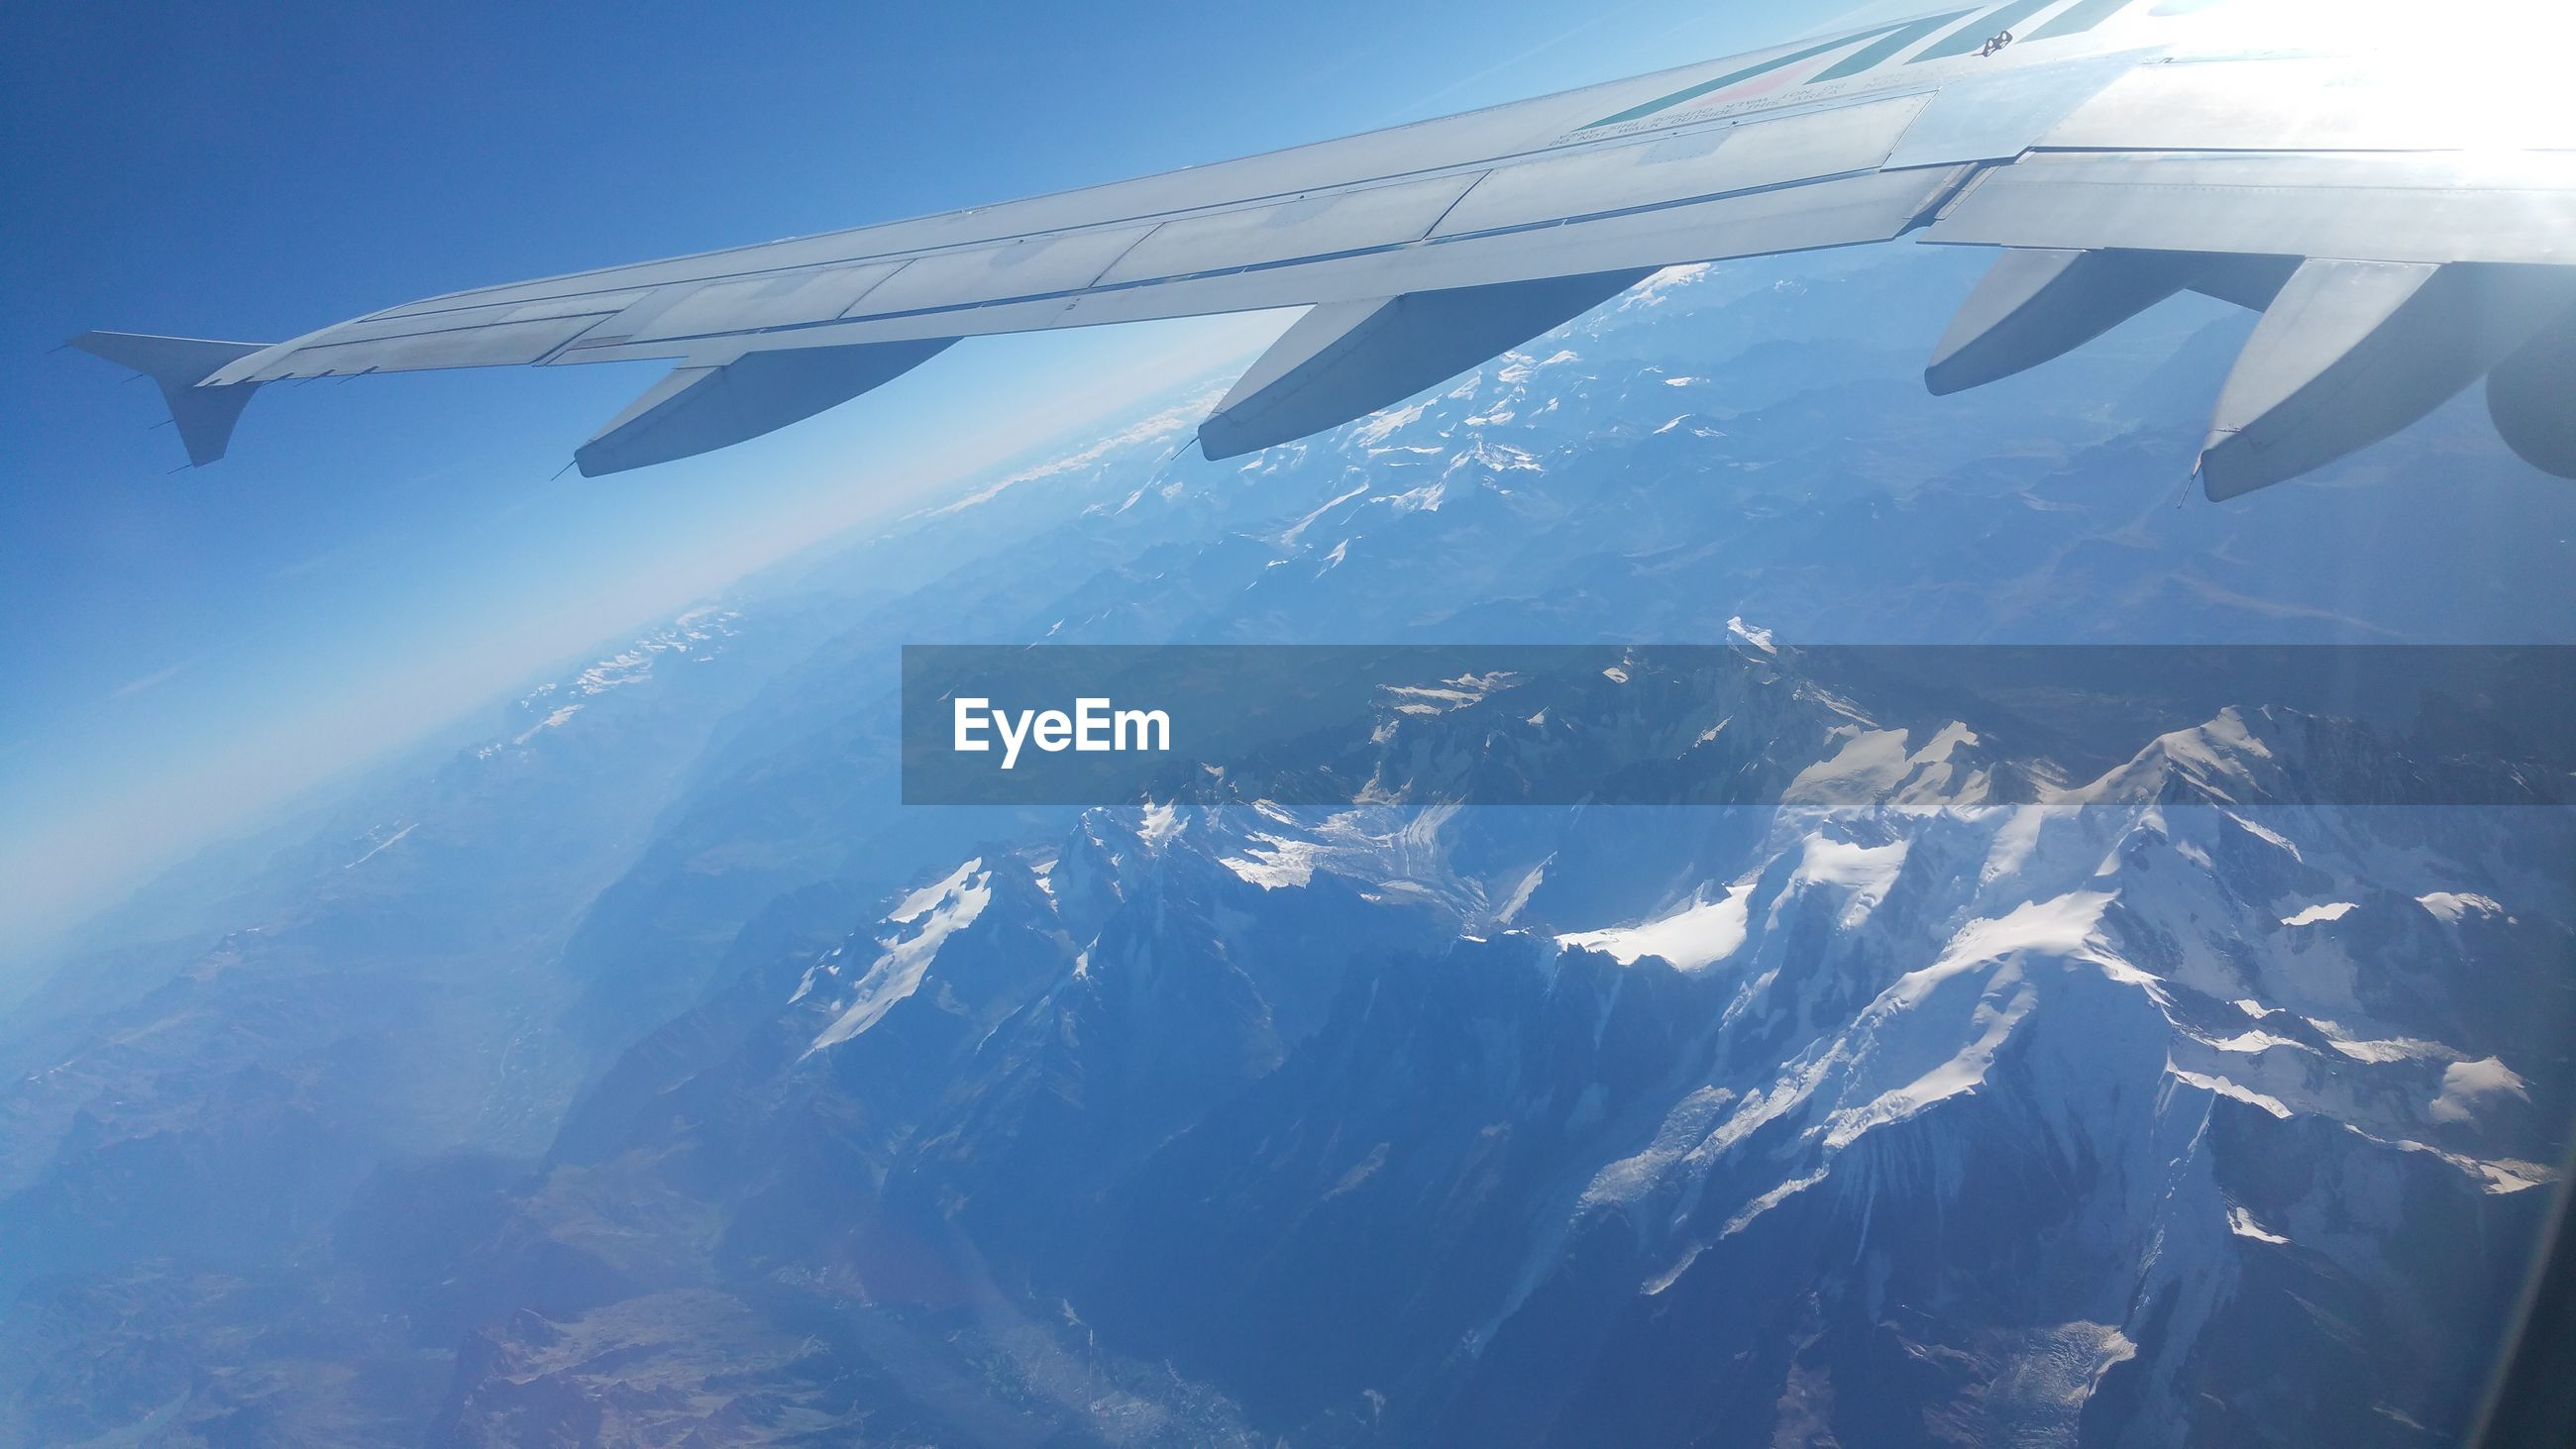 Cropped image of airplane flying above mountains